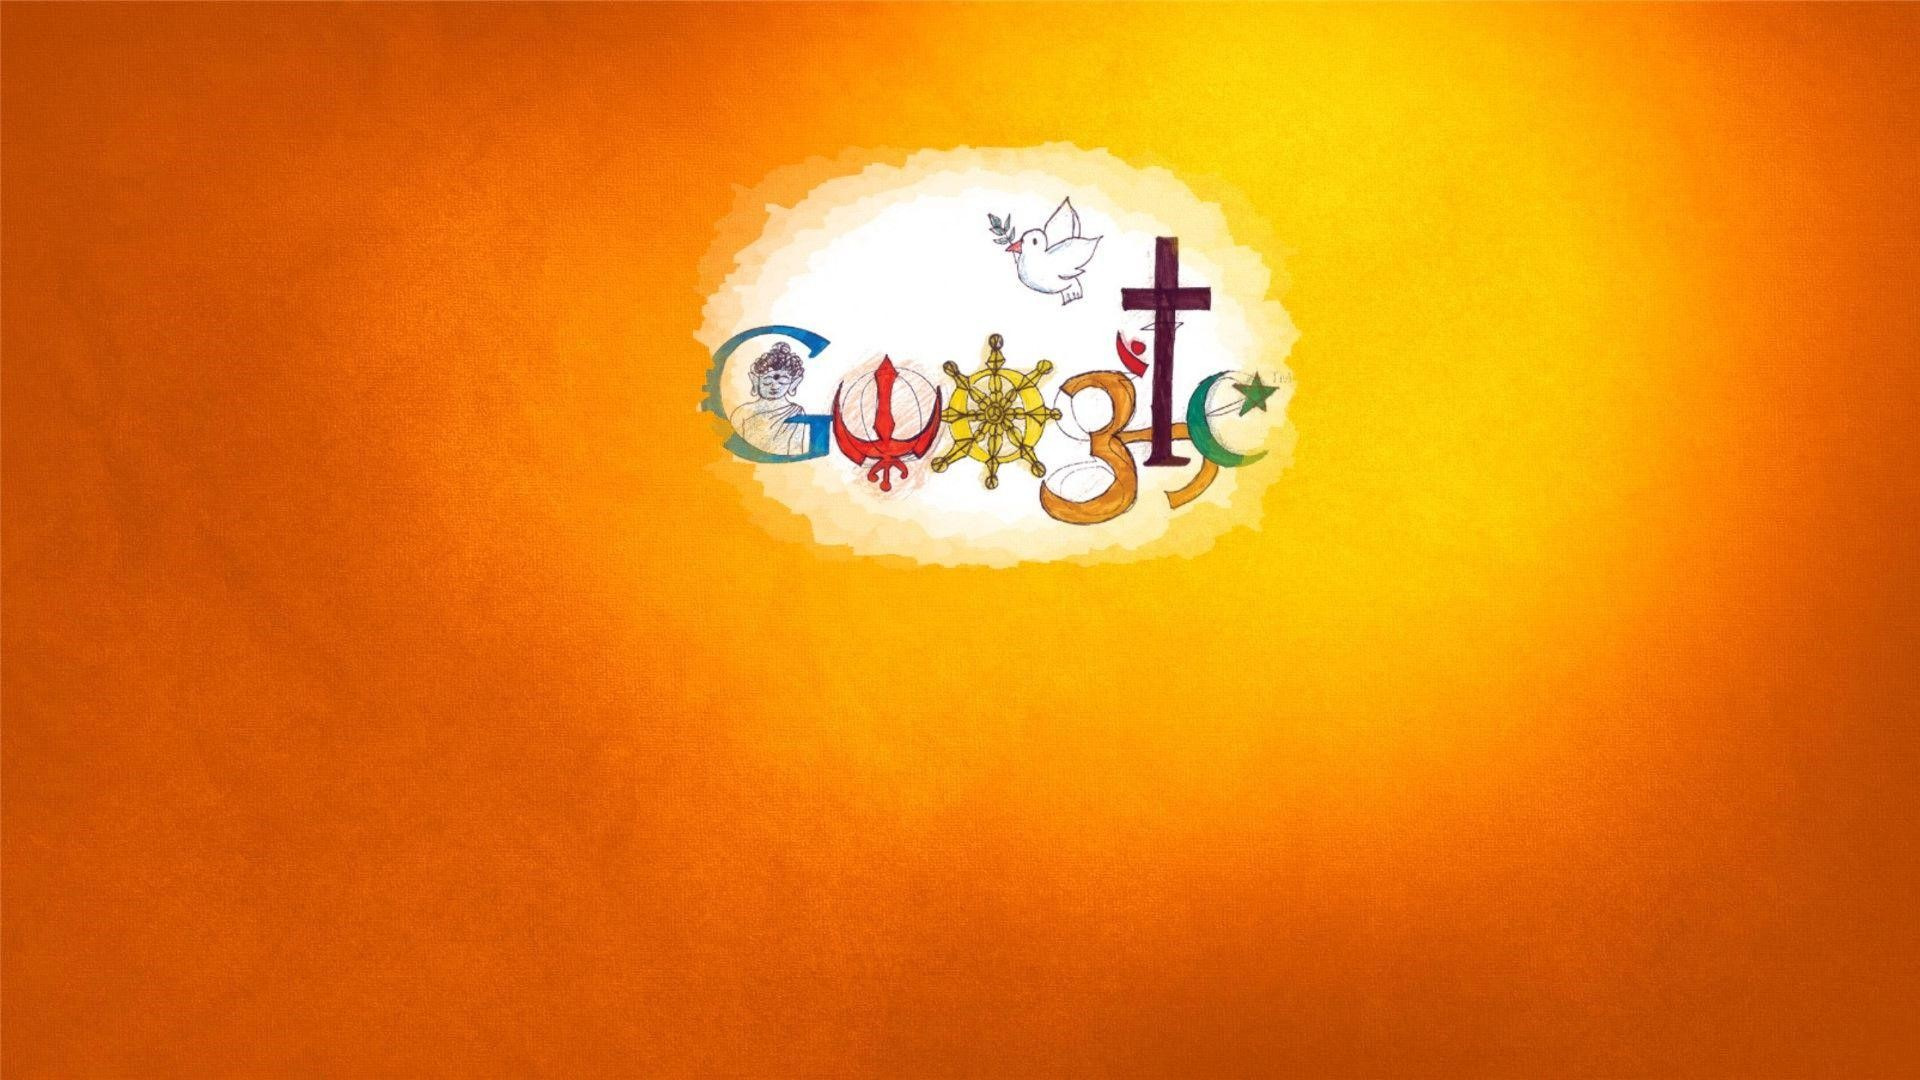 Sikh Wallpapers Hd For Iphone 5 Sikh Khanda Wallpapers 27 Images